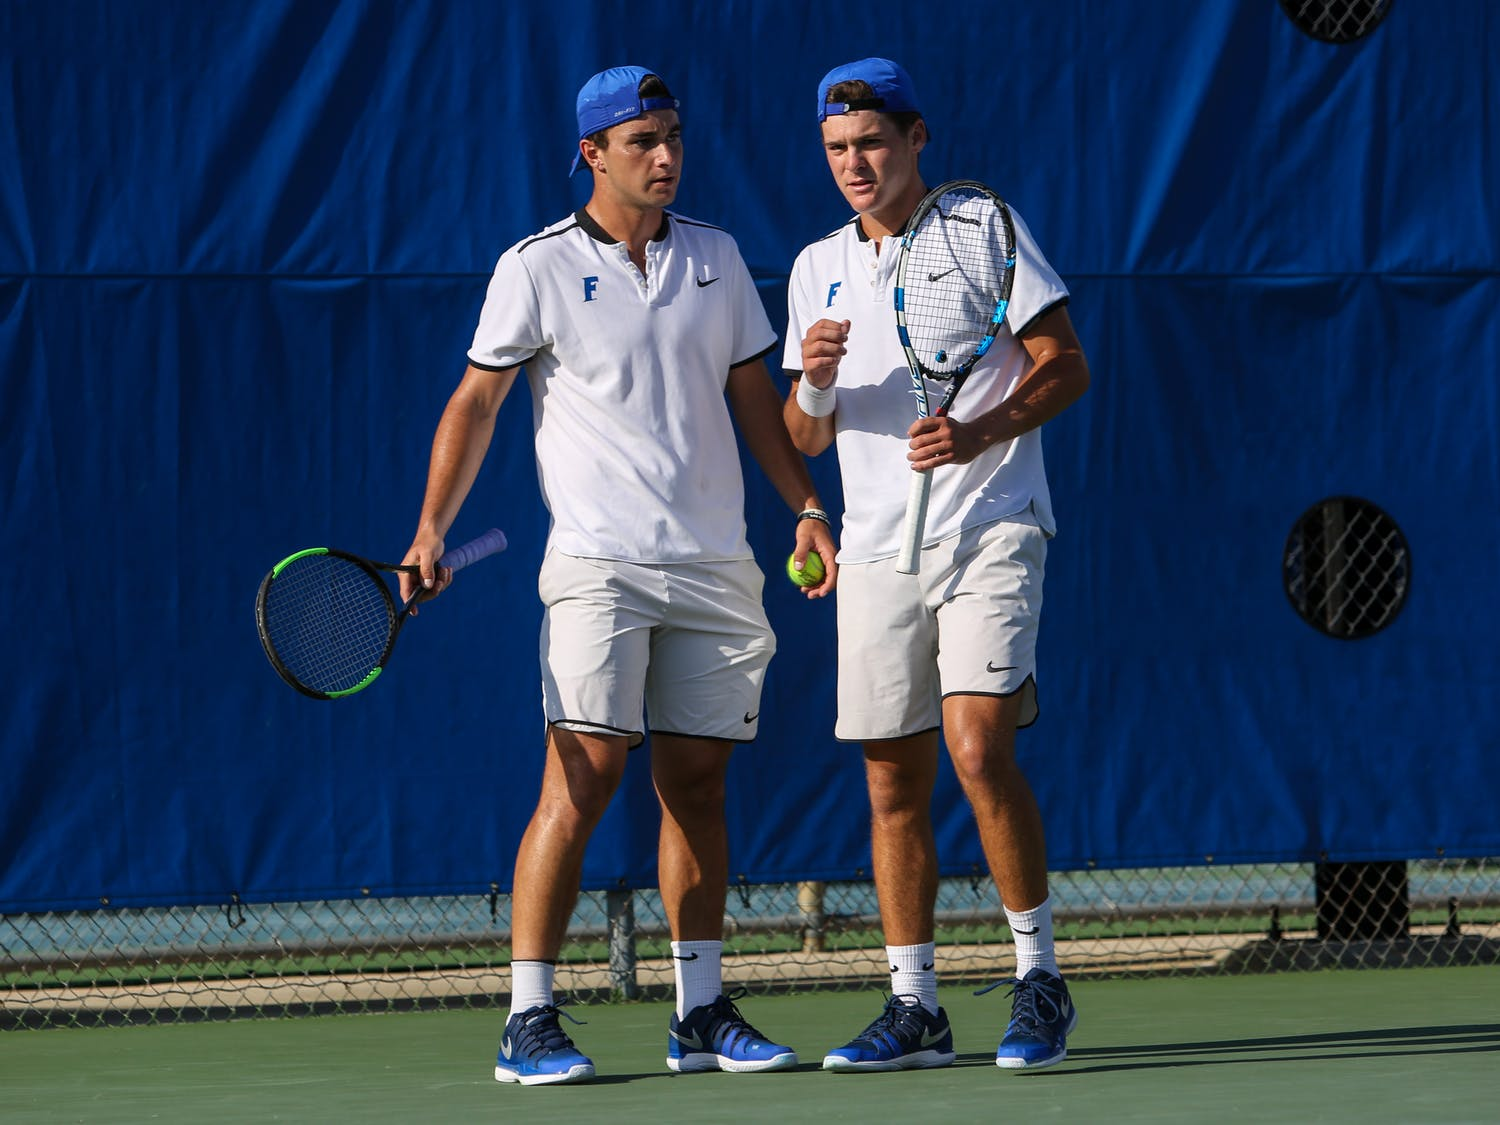 The doubles duo of junior McClain Kessler (right) and Duarte Vale (left) dropped it's NCAA quarterfinals matchup against Ohio State'sMartin Joyce andMikael Torpegaard, 6-3, 6-2. Florida's season ended with the doubles defeat.